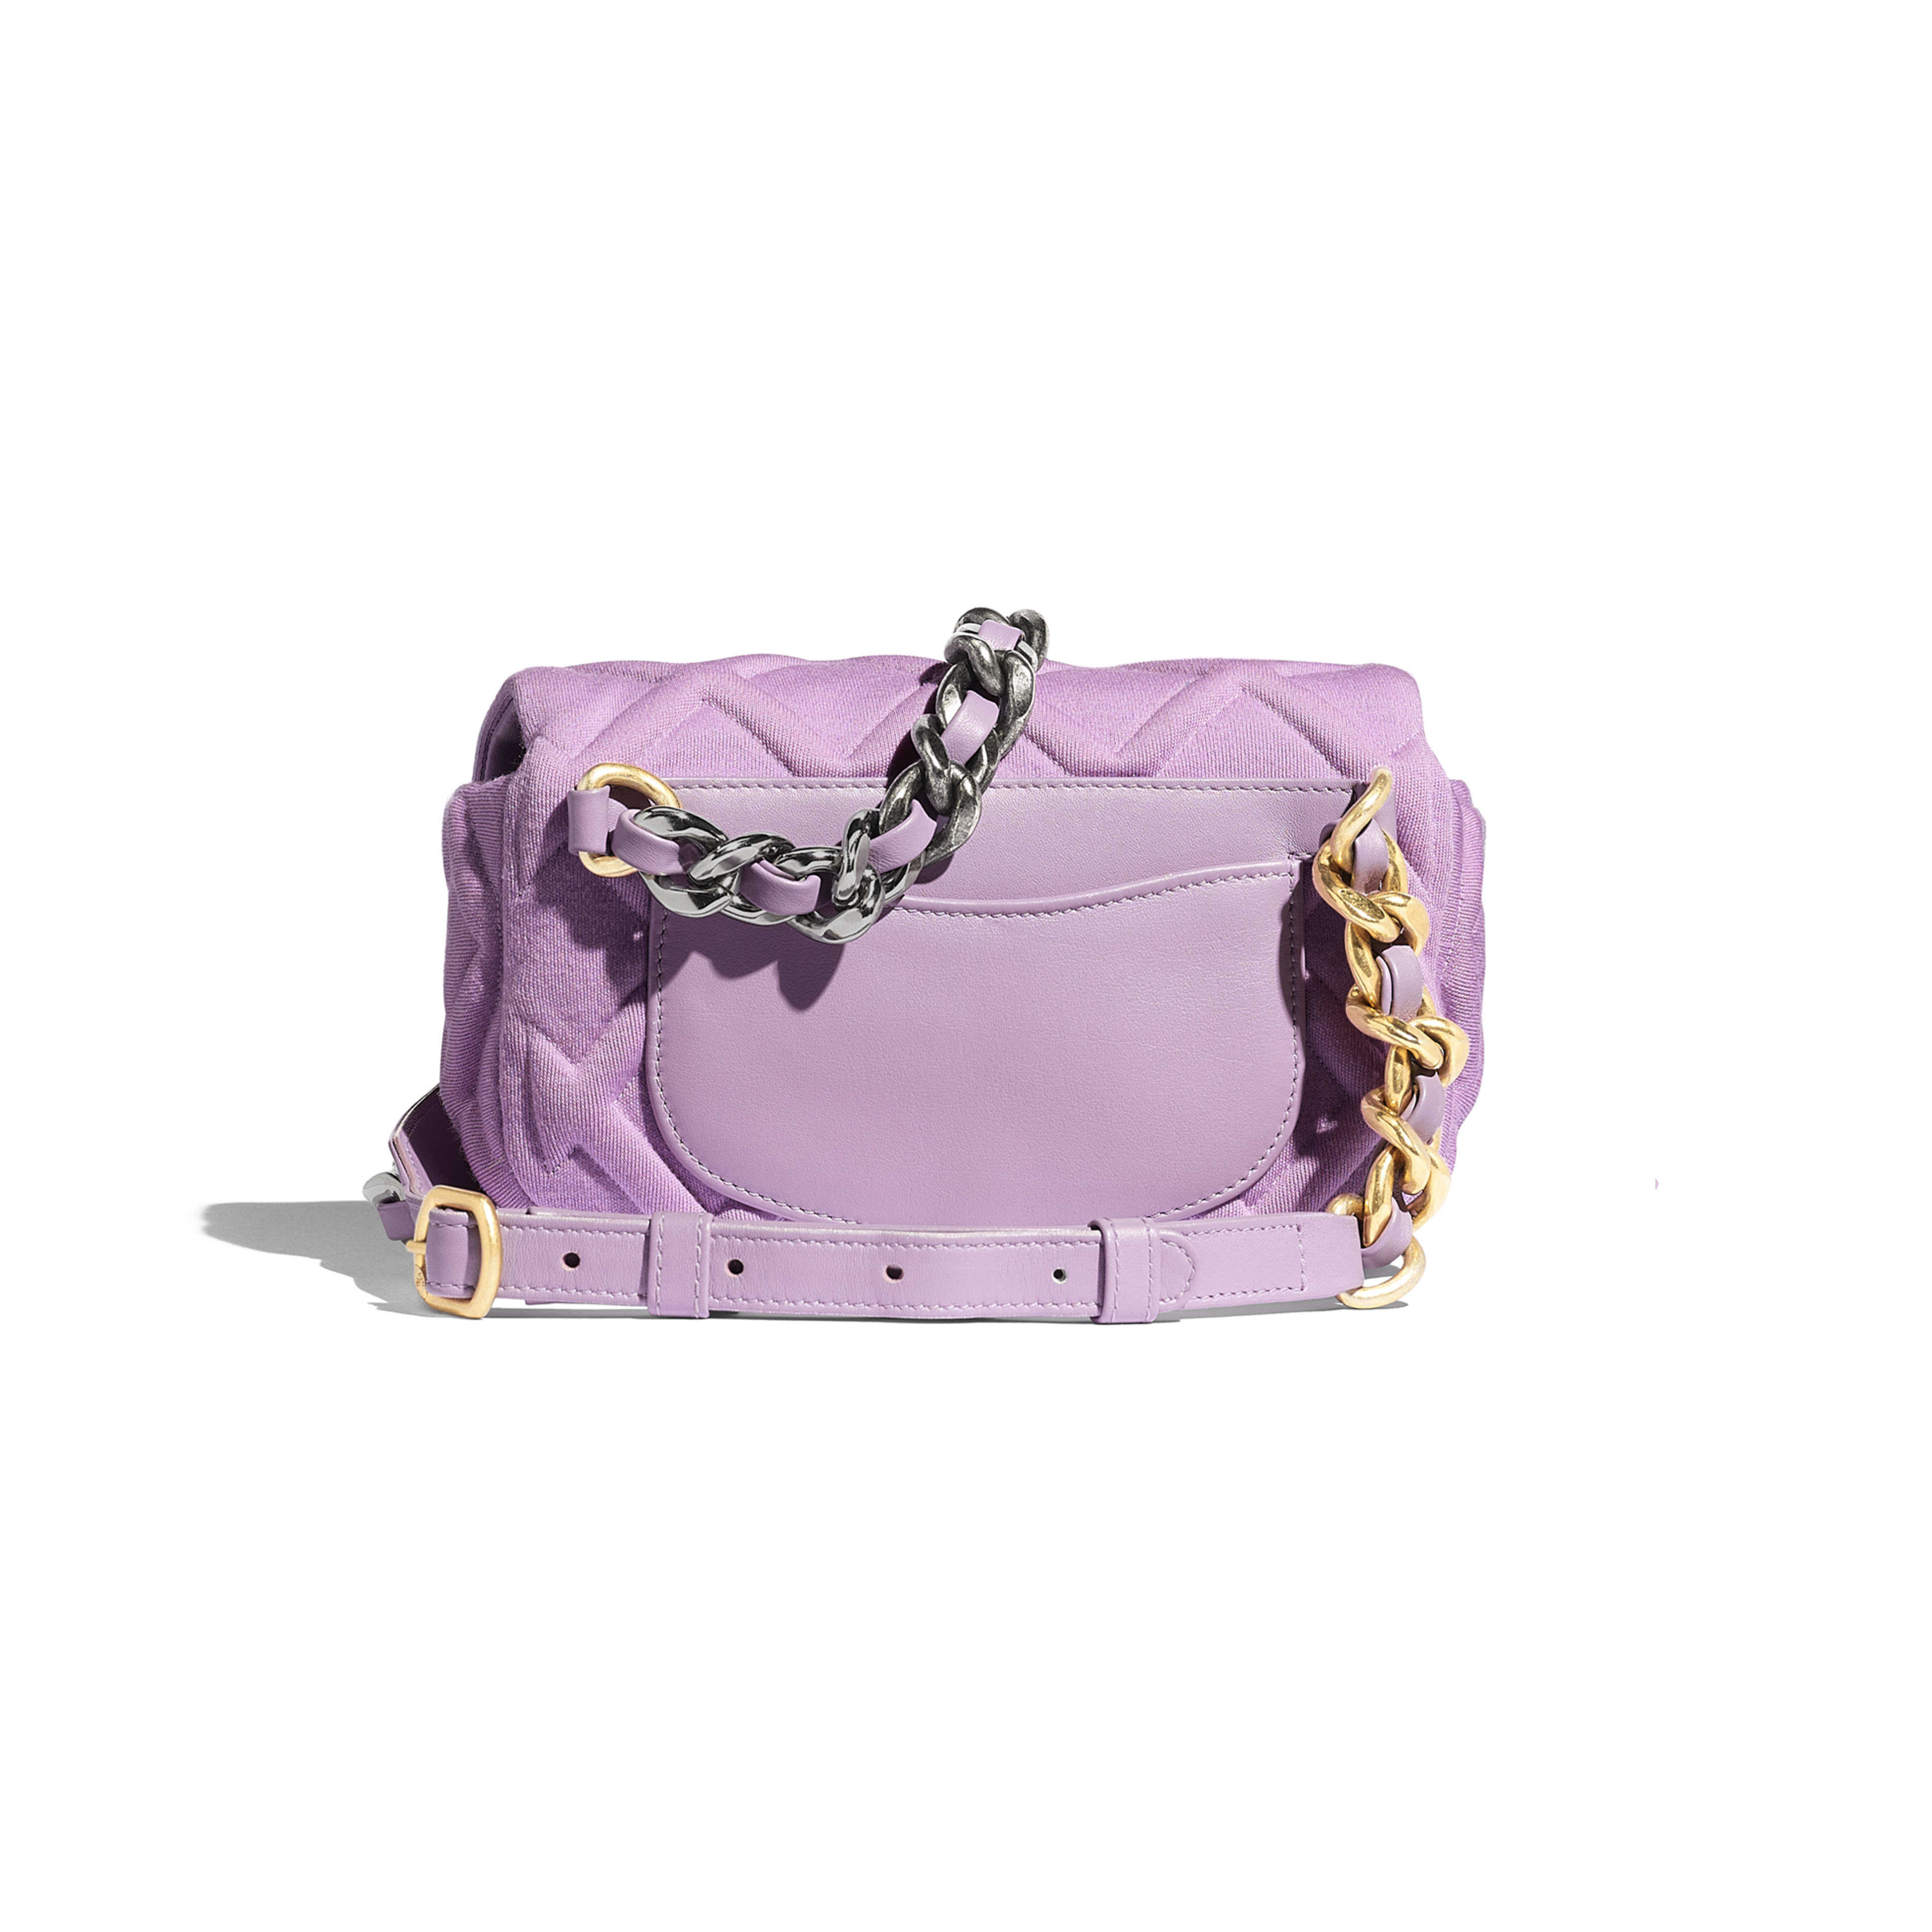 CHANEL 19 Waist Bag - Mauve - Jersey, Gold-Tone, Silver-Tone & Ruthenium-Finish Metal - Alternative view - see full sized version